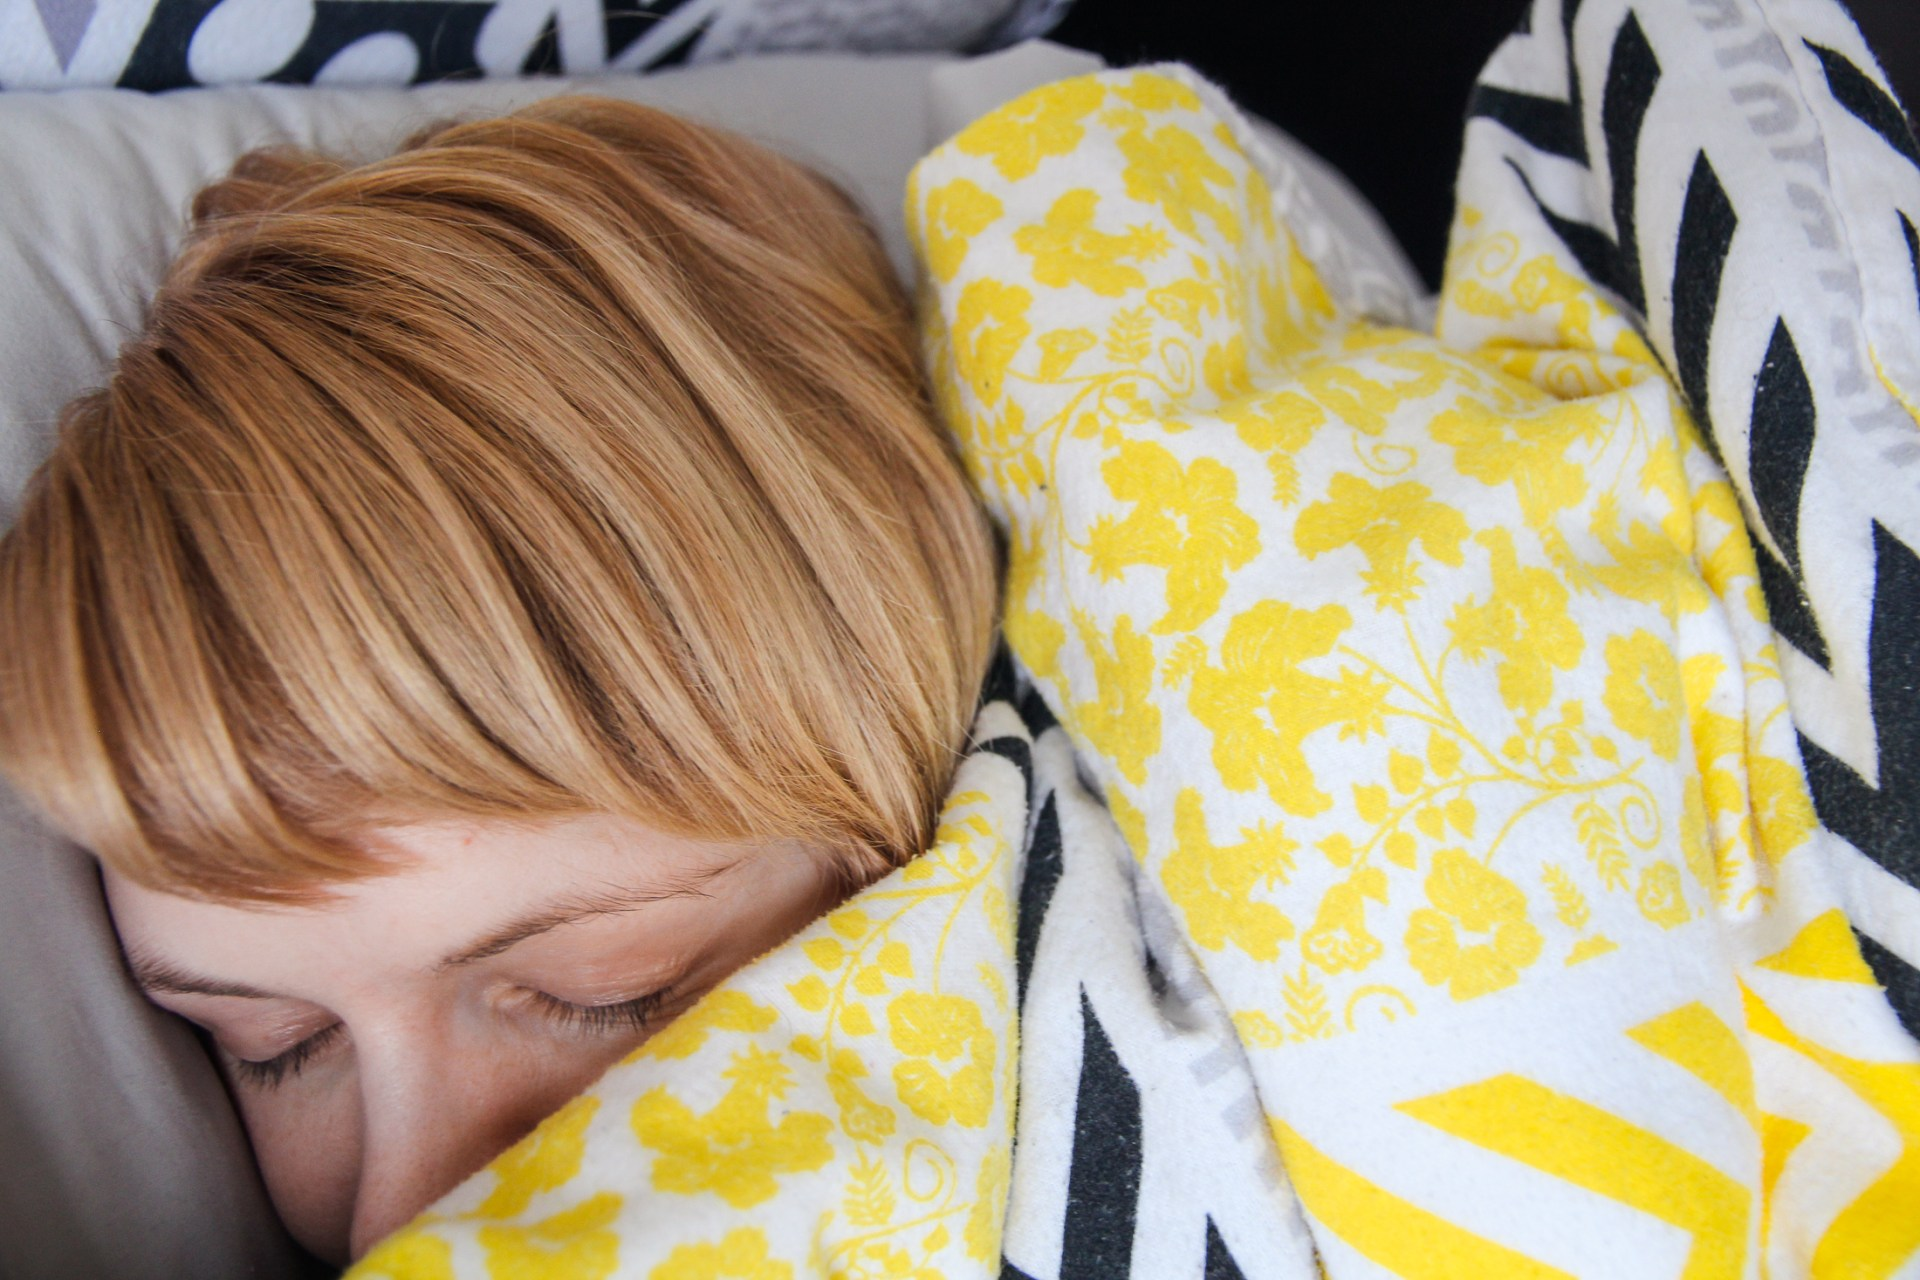 Foolproof ways to block out noise and get sleep